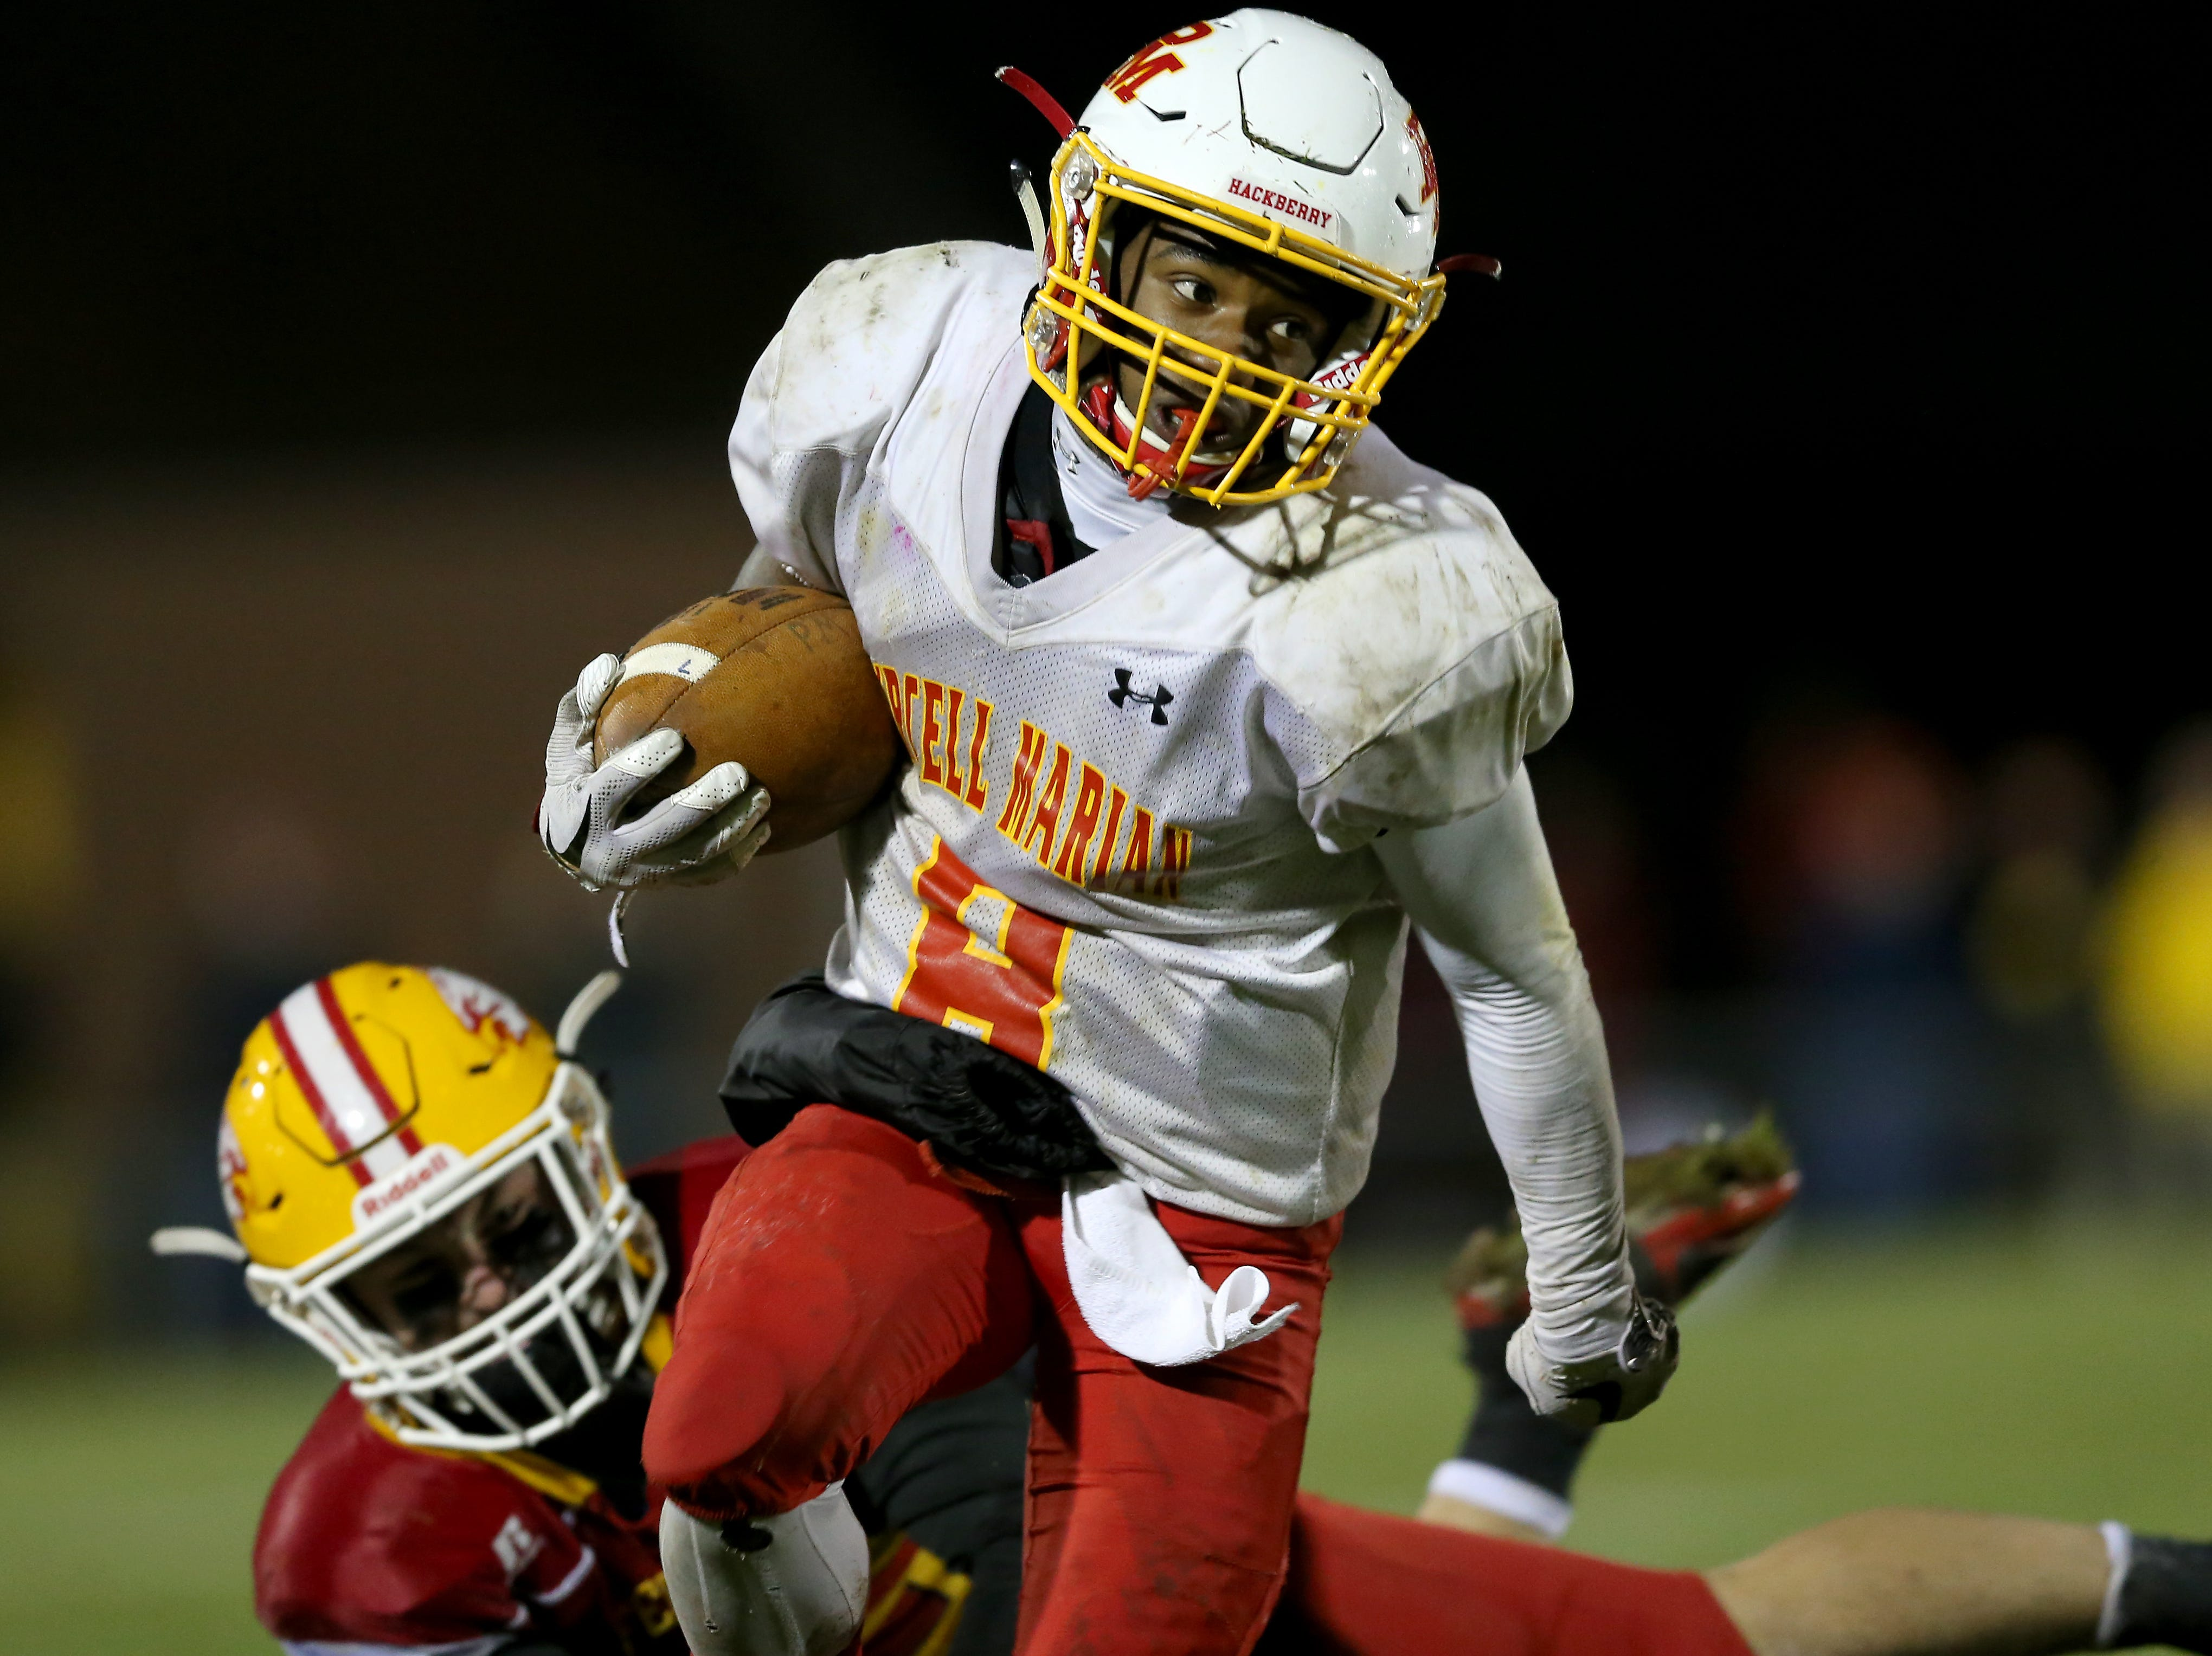 Purcell Marian running back Torrence Johnson (8) carries the ball in the third quarter during a high school football game between Purcell Marian and Bishop Fenwick, Friday, Oct. 12, 2018, at Bishop Fenwick High School in Middletown, Ohio.